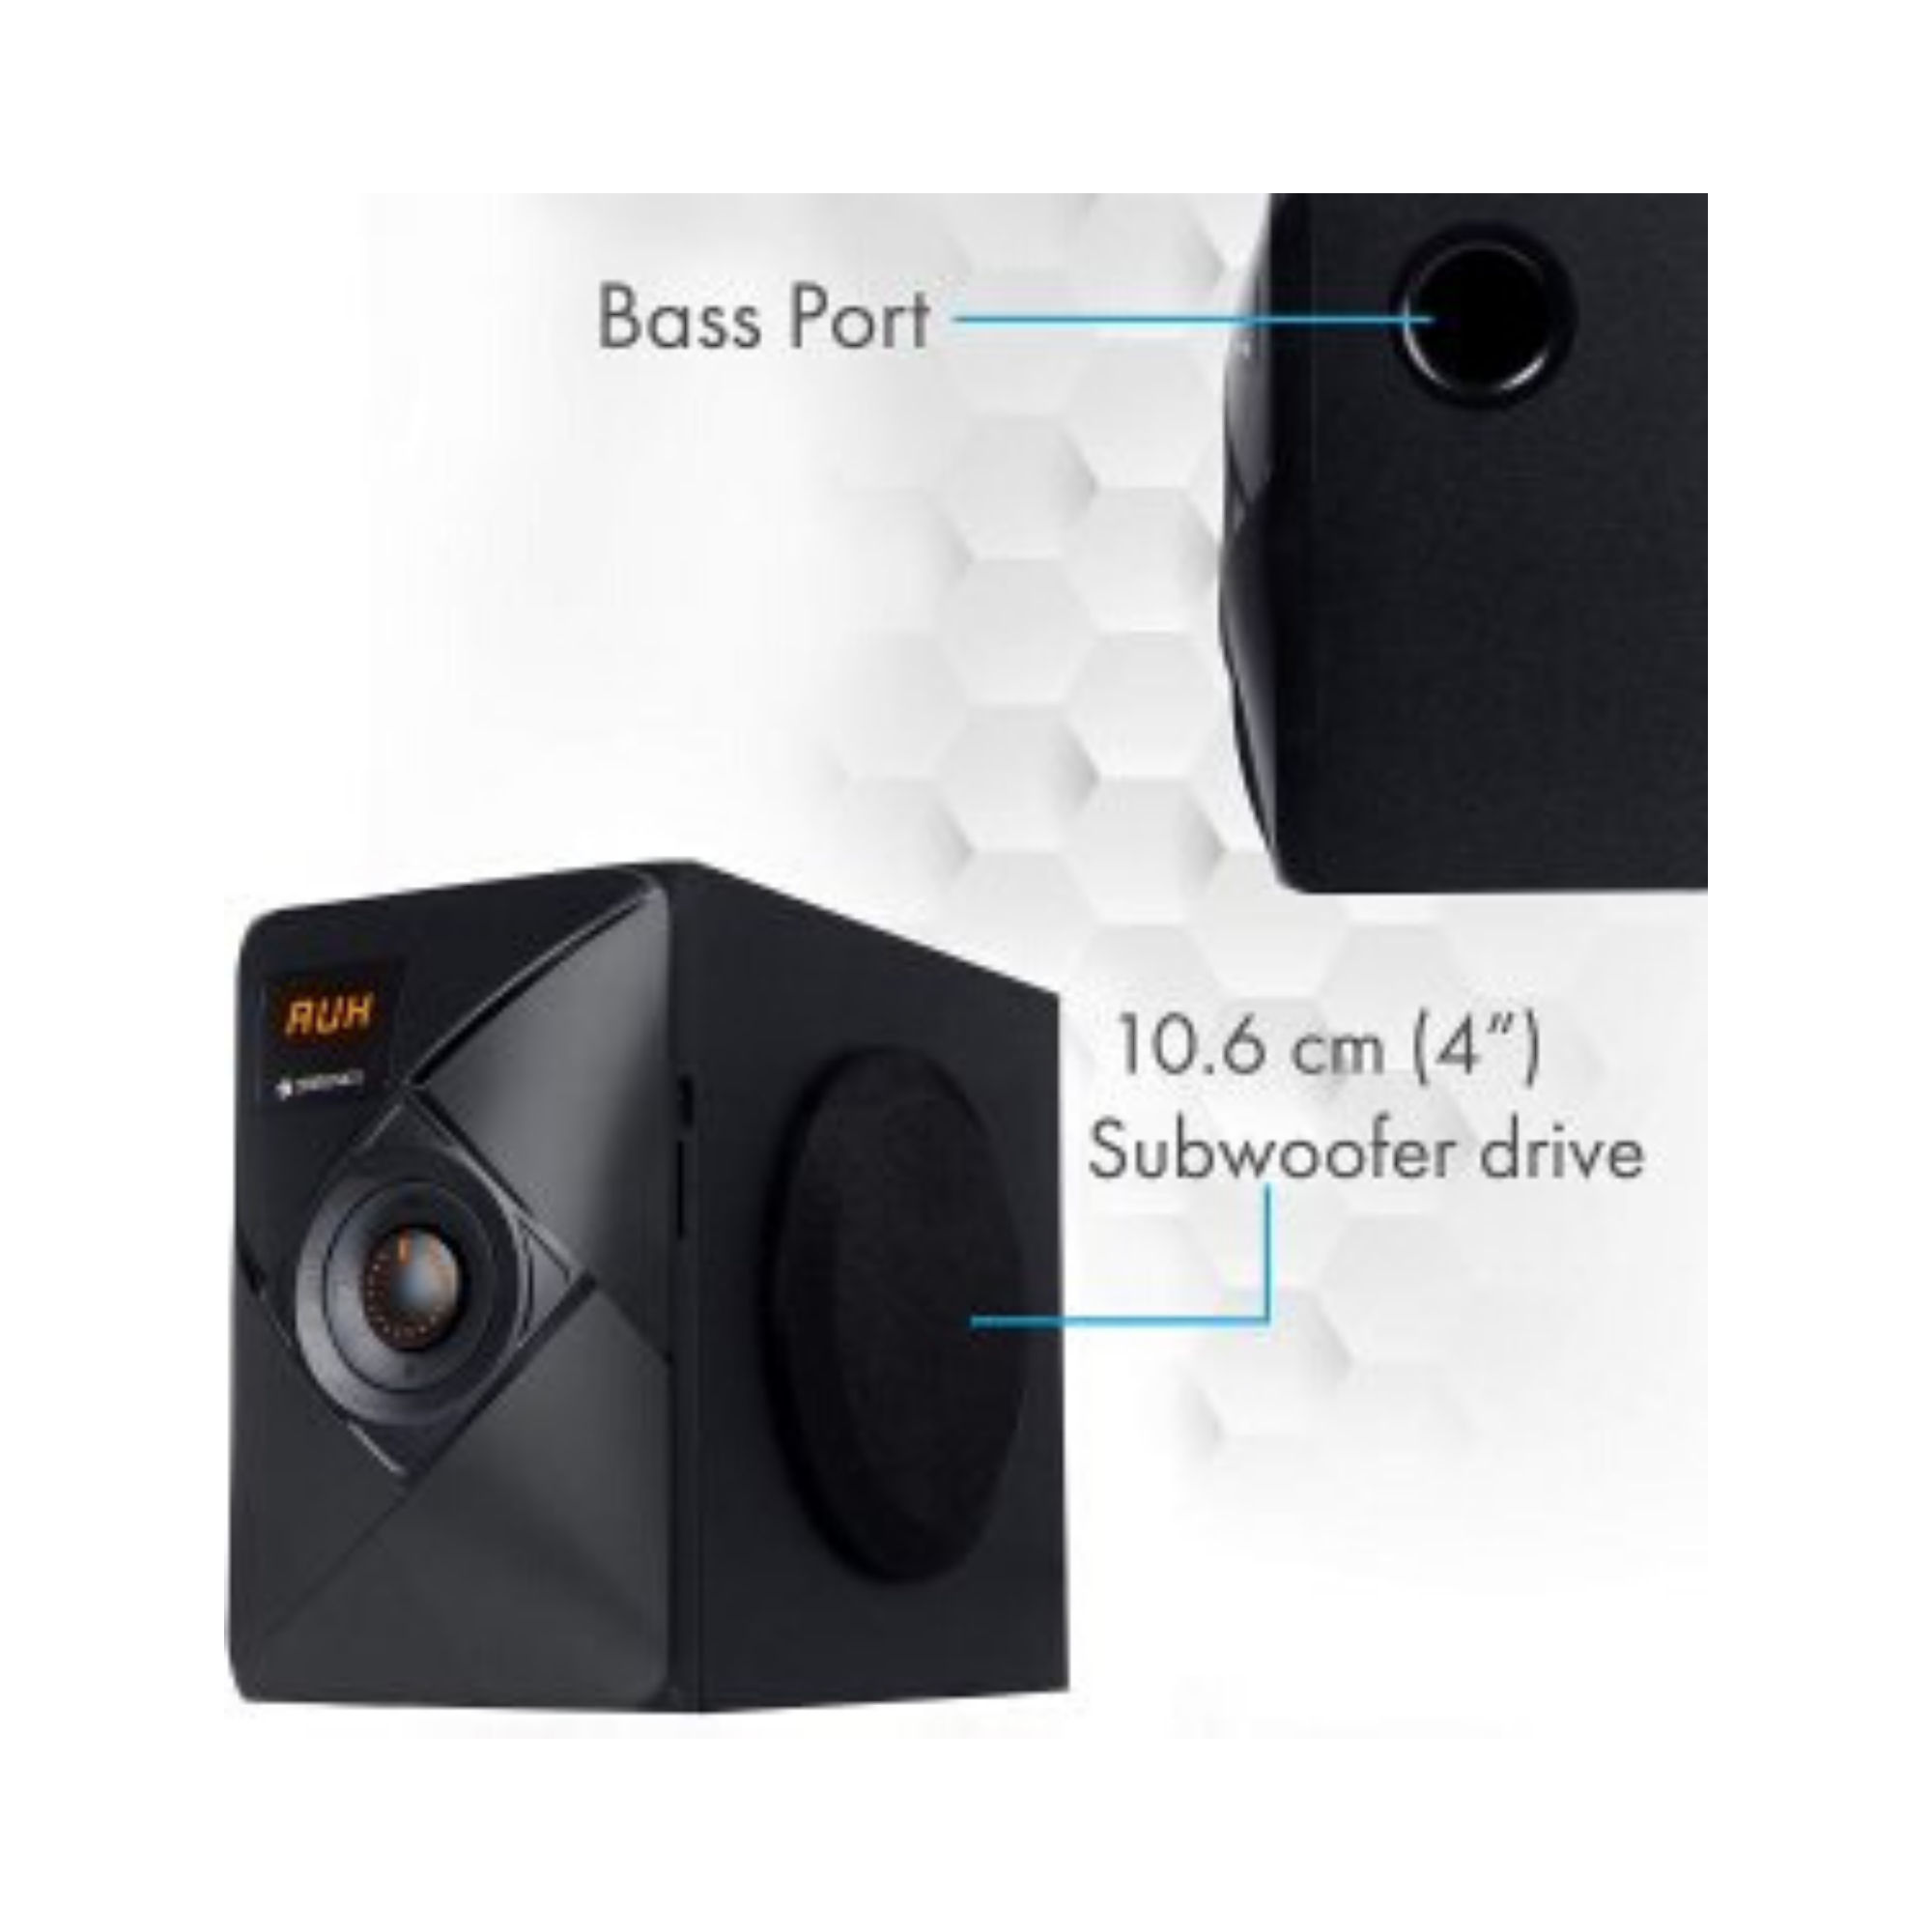 Zebronics ZEB-BT6790RUCF 5.1 Multi Media Speakers with USB Input, FM Radio and Remote Control (Black)